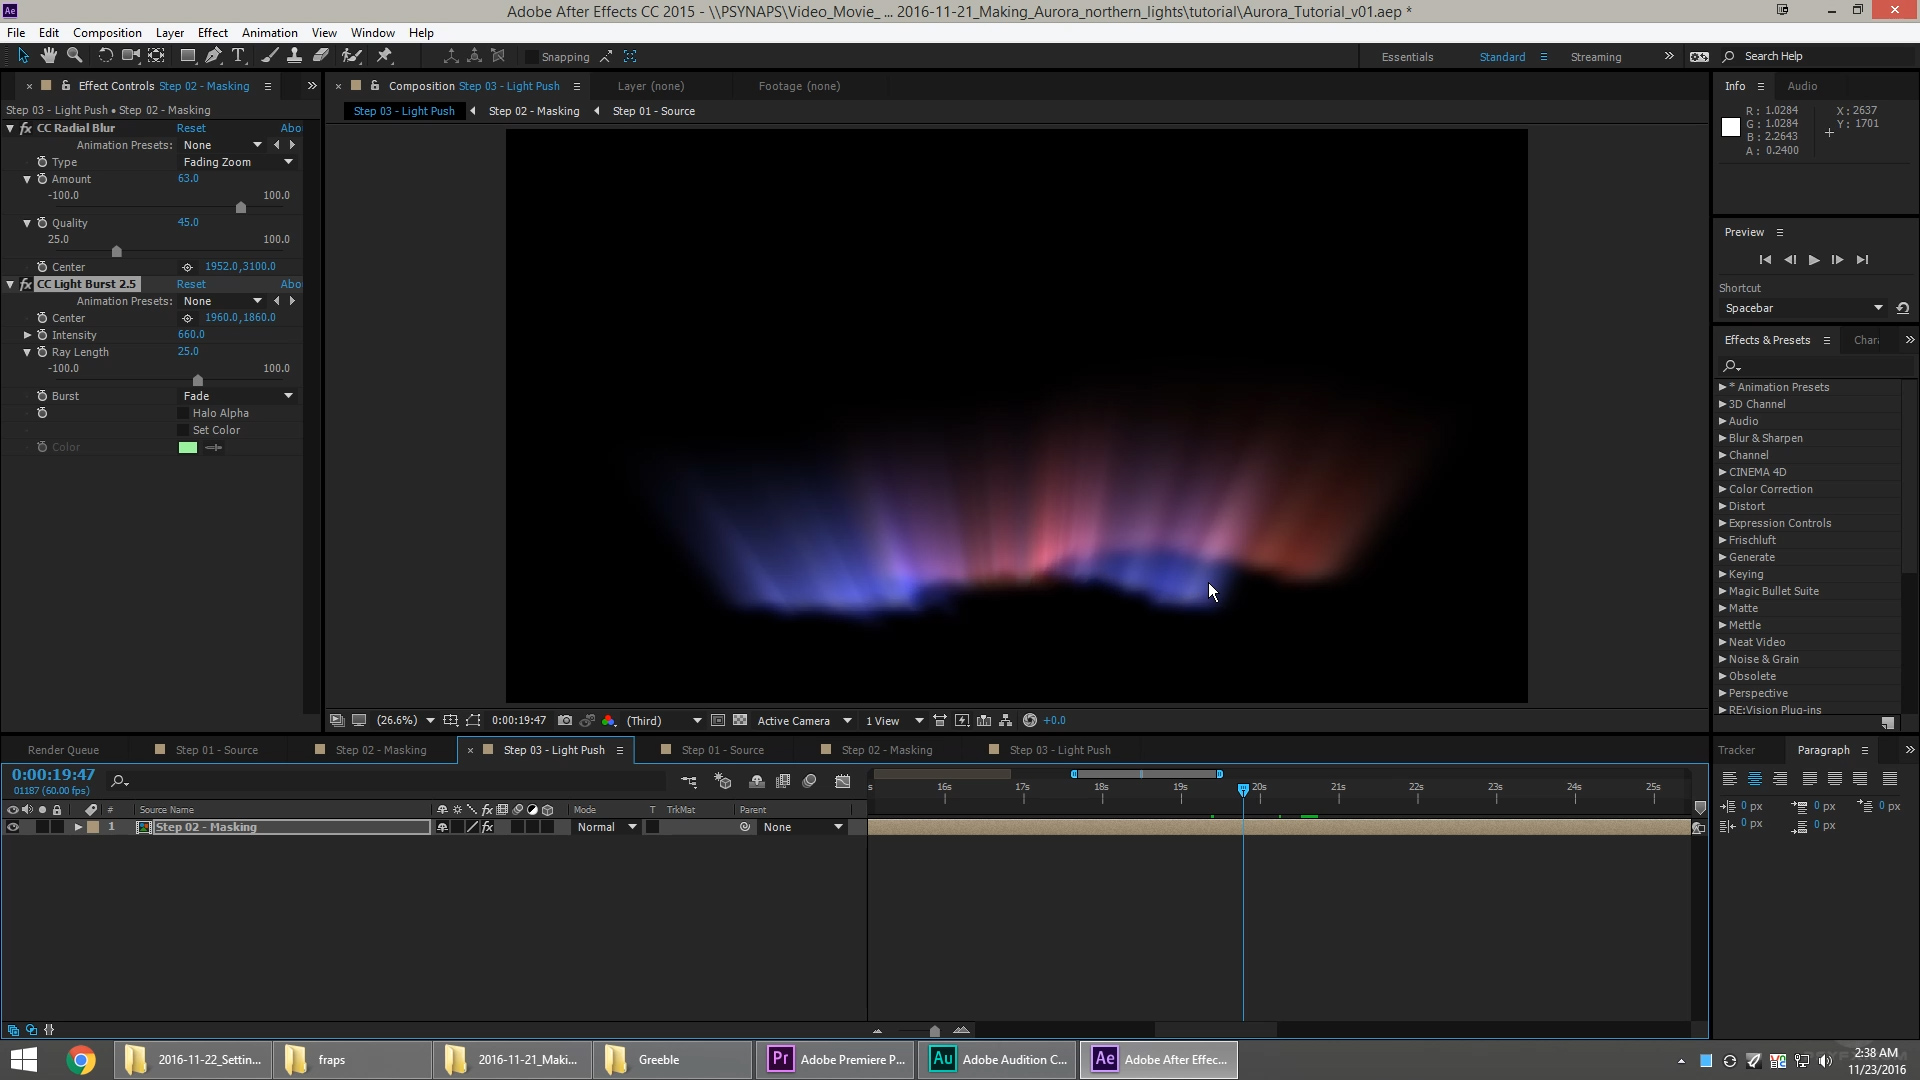 Create an Aurora (Northern Lights) in After Effects